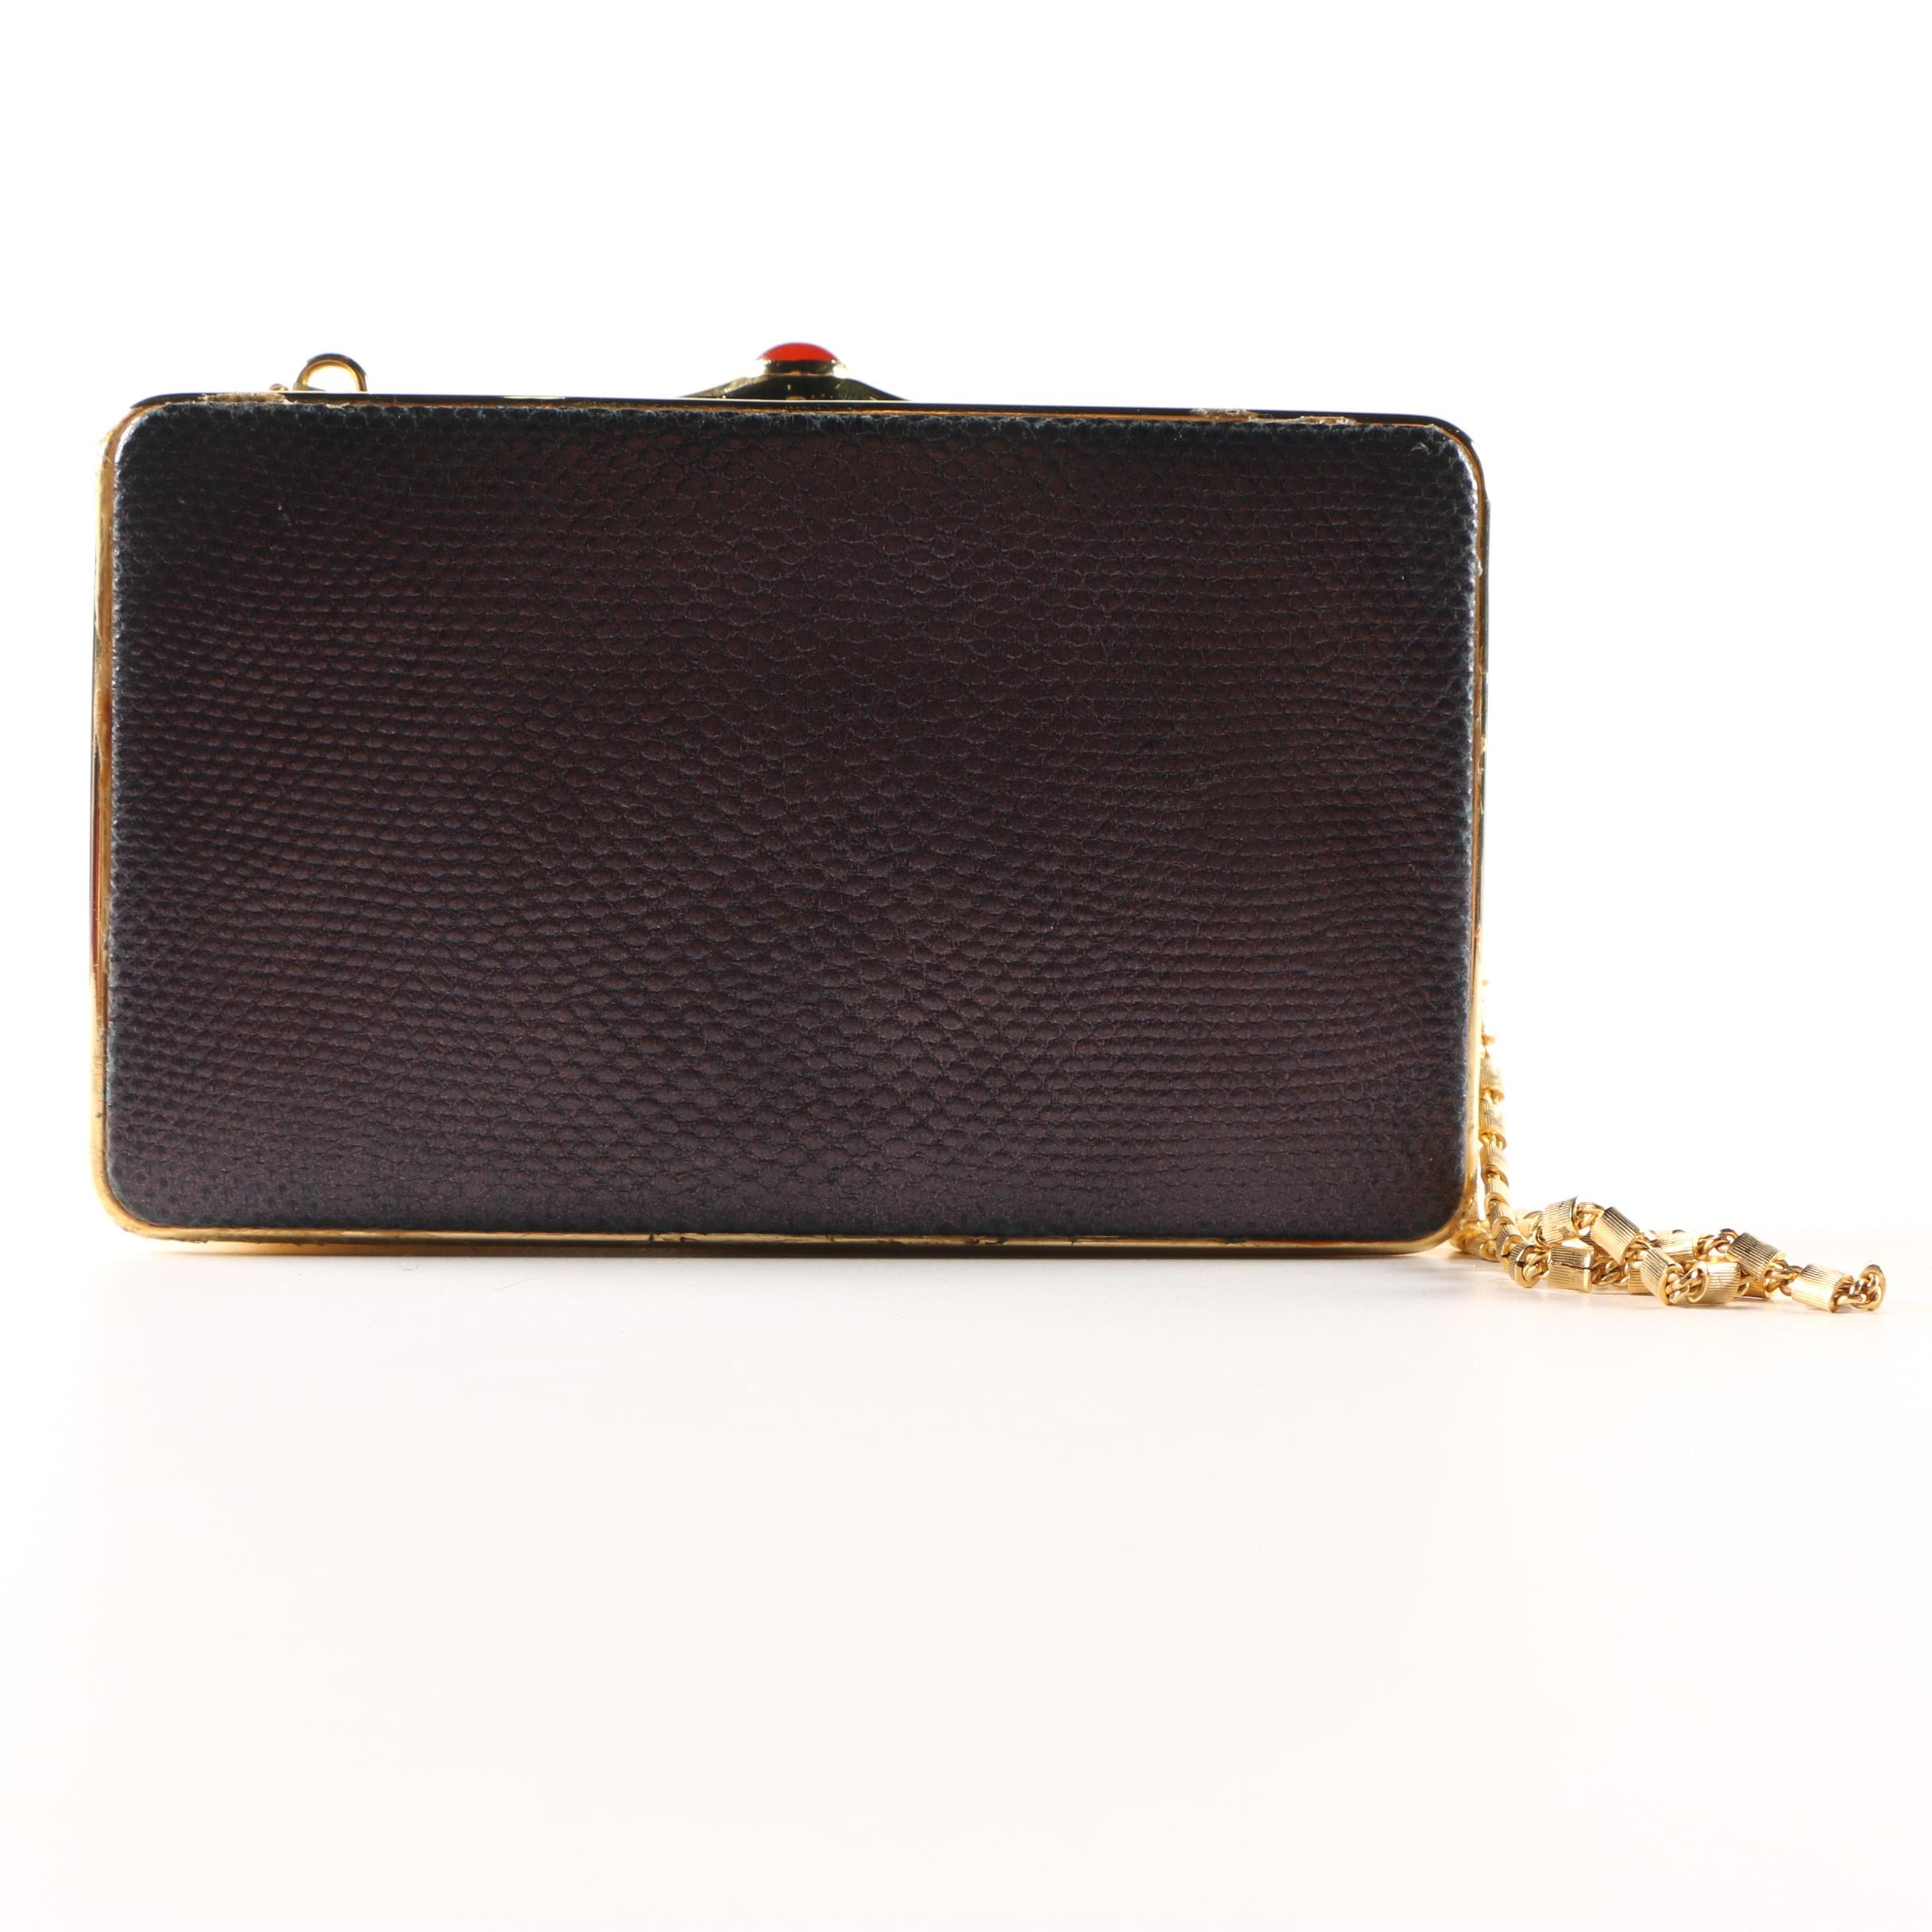 Judith Leiber for Bonwit Teller Snakeskin Box Clutch